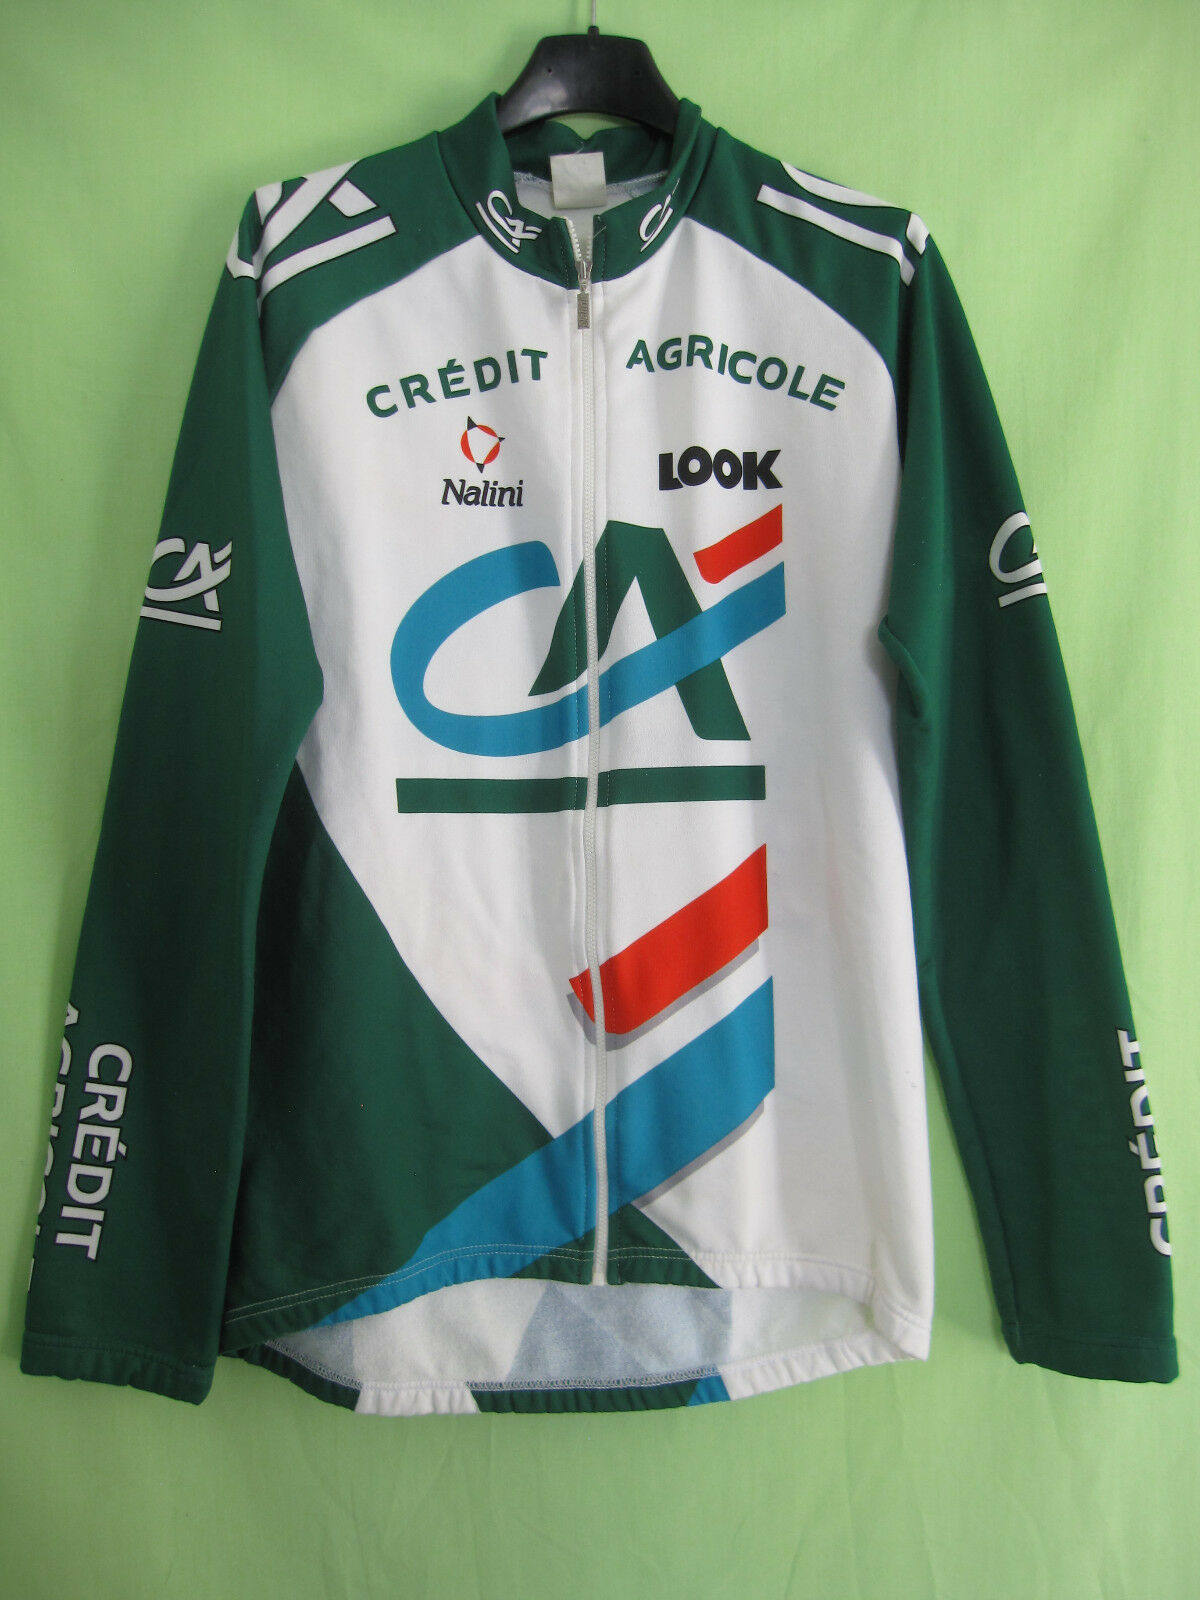 Maillot cycliste Credit Agricole LOOK Nalini Manche Longue Jersey - 4   L